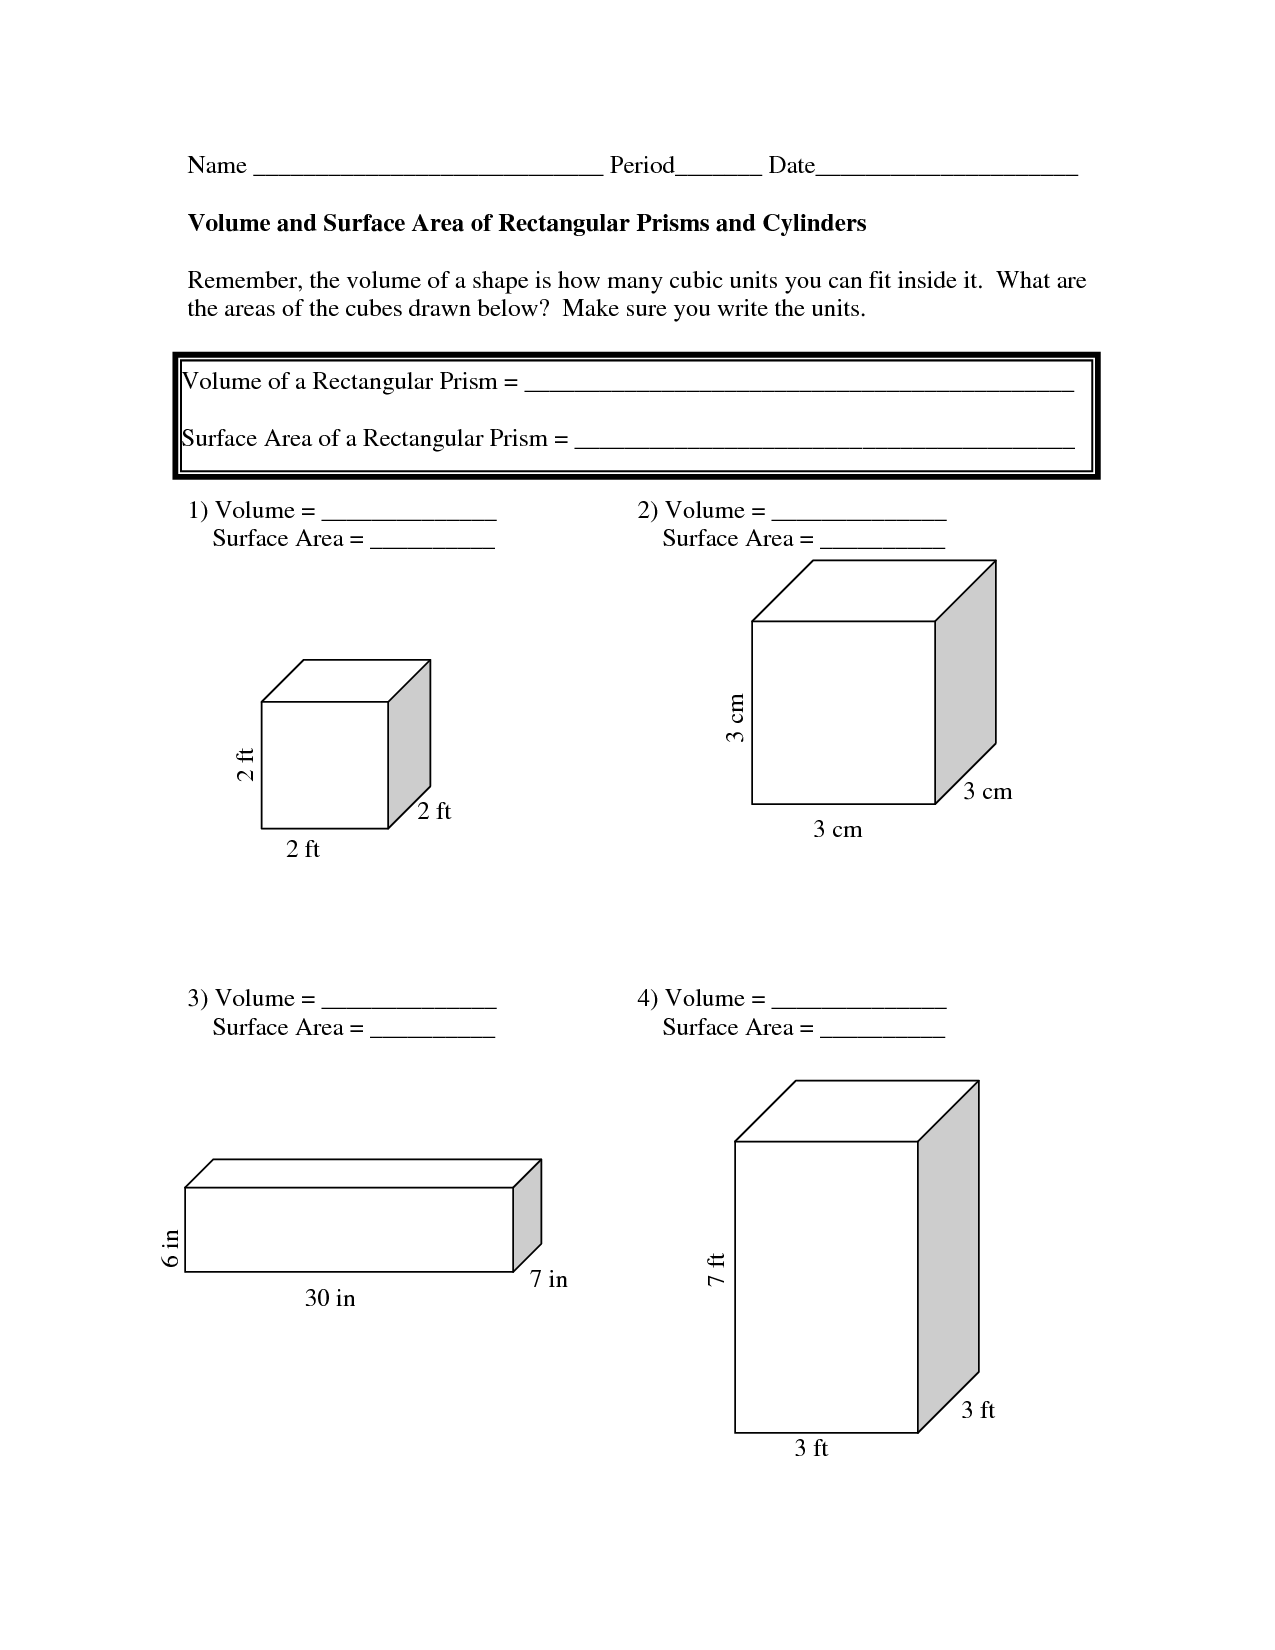 medium resolution of volume and surface area worksheets   Volume and Surface Area Worksheets -  DOC   Area worksheets